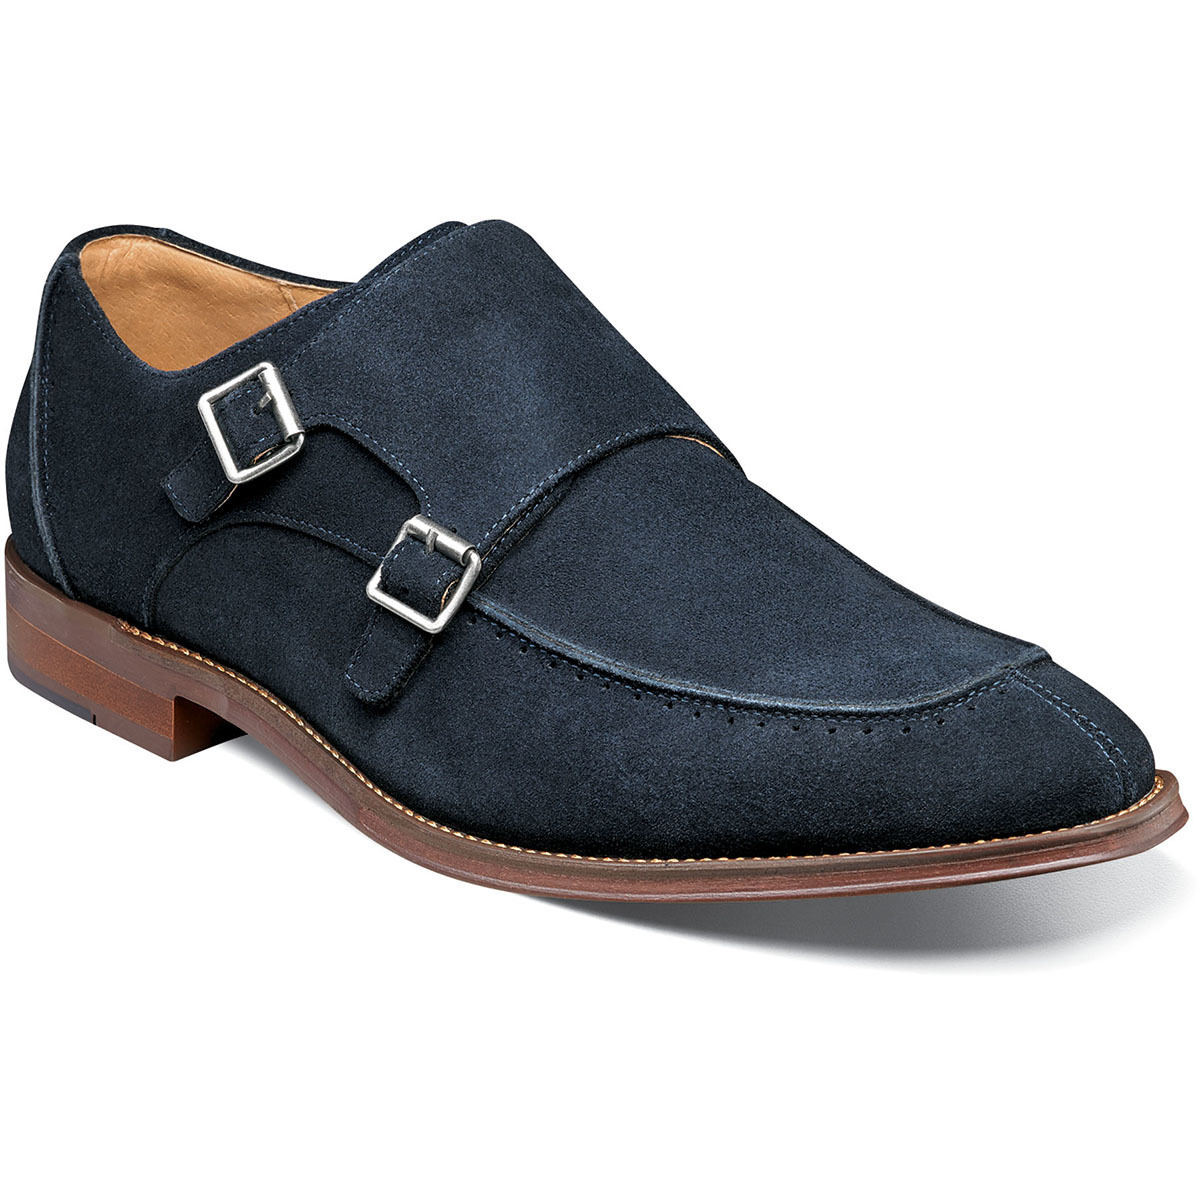 Handmade Men's Blue Suede Brown Sole Double Monk Strap Shoes